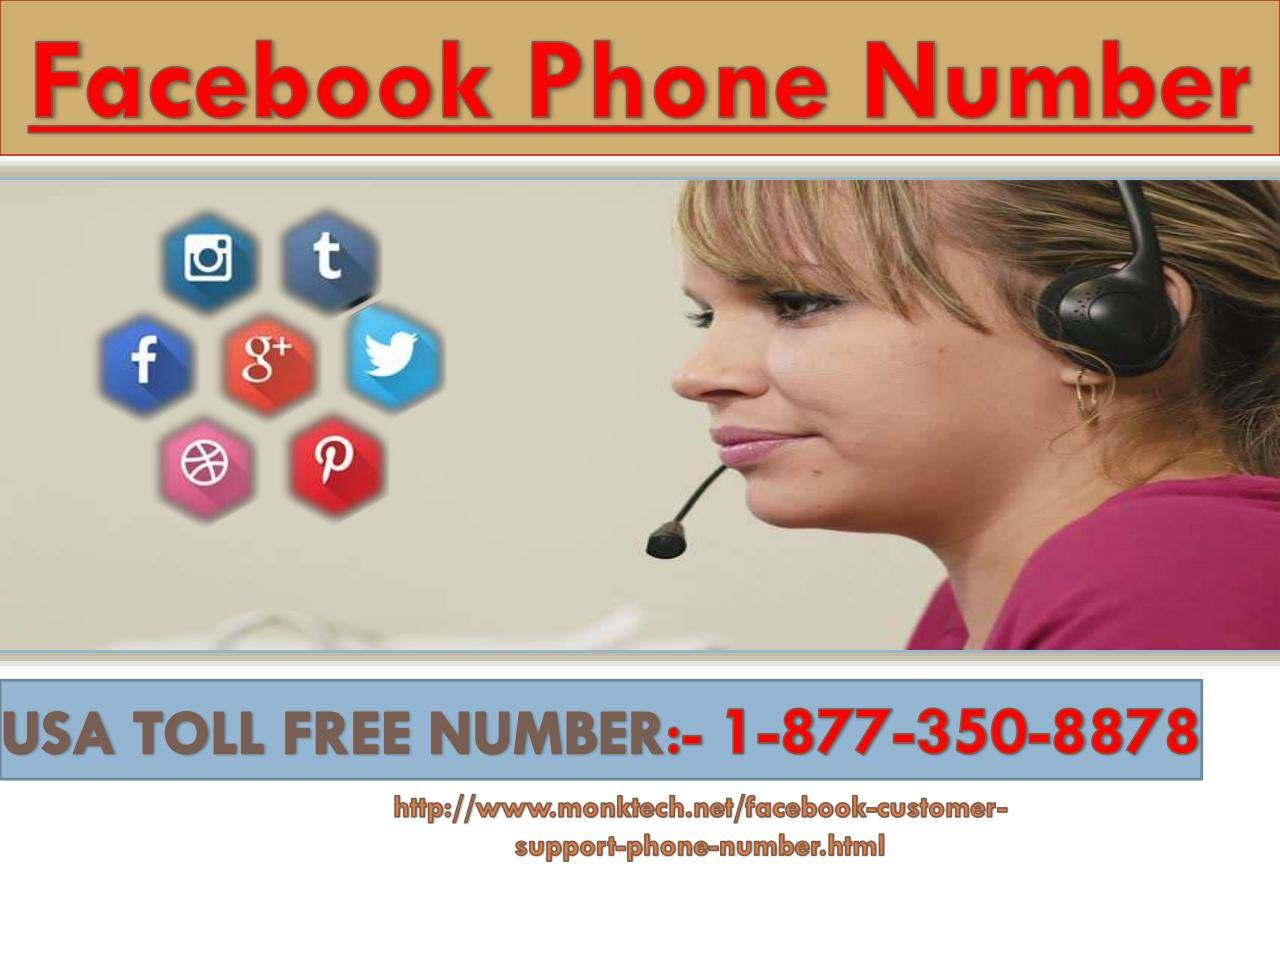 Can I Delete Videos From Fb? Call at Facebook Phone Number 1-877-350-8878Sure, you can delete